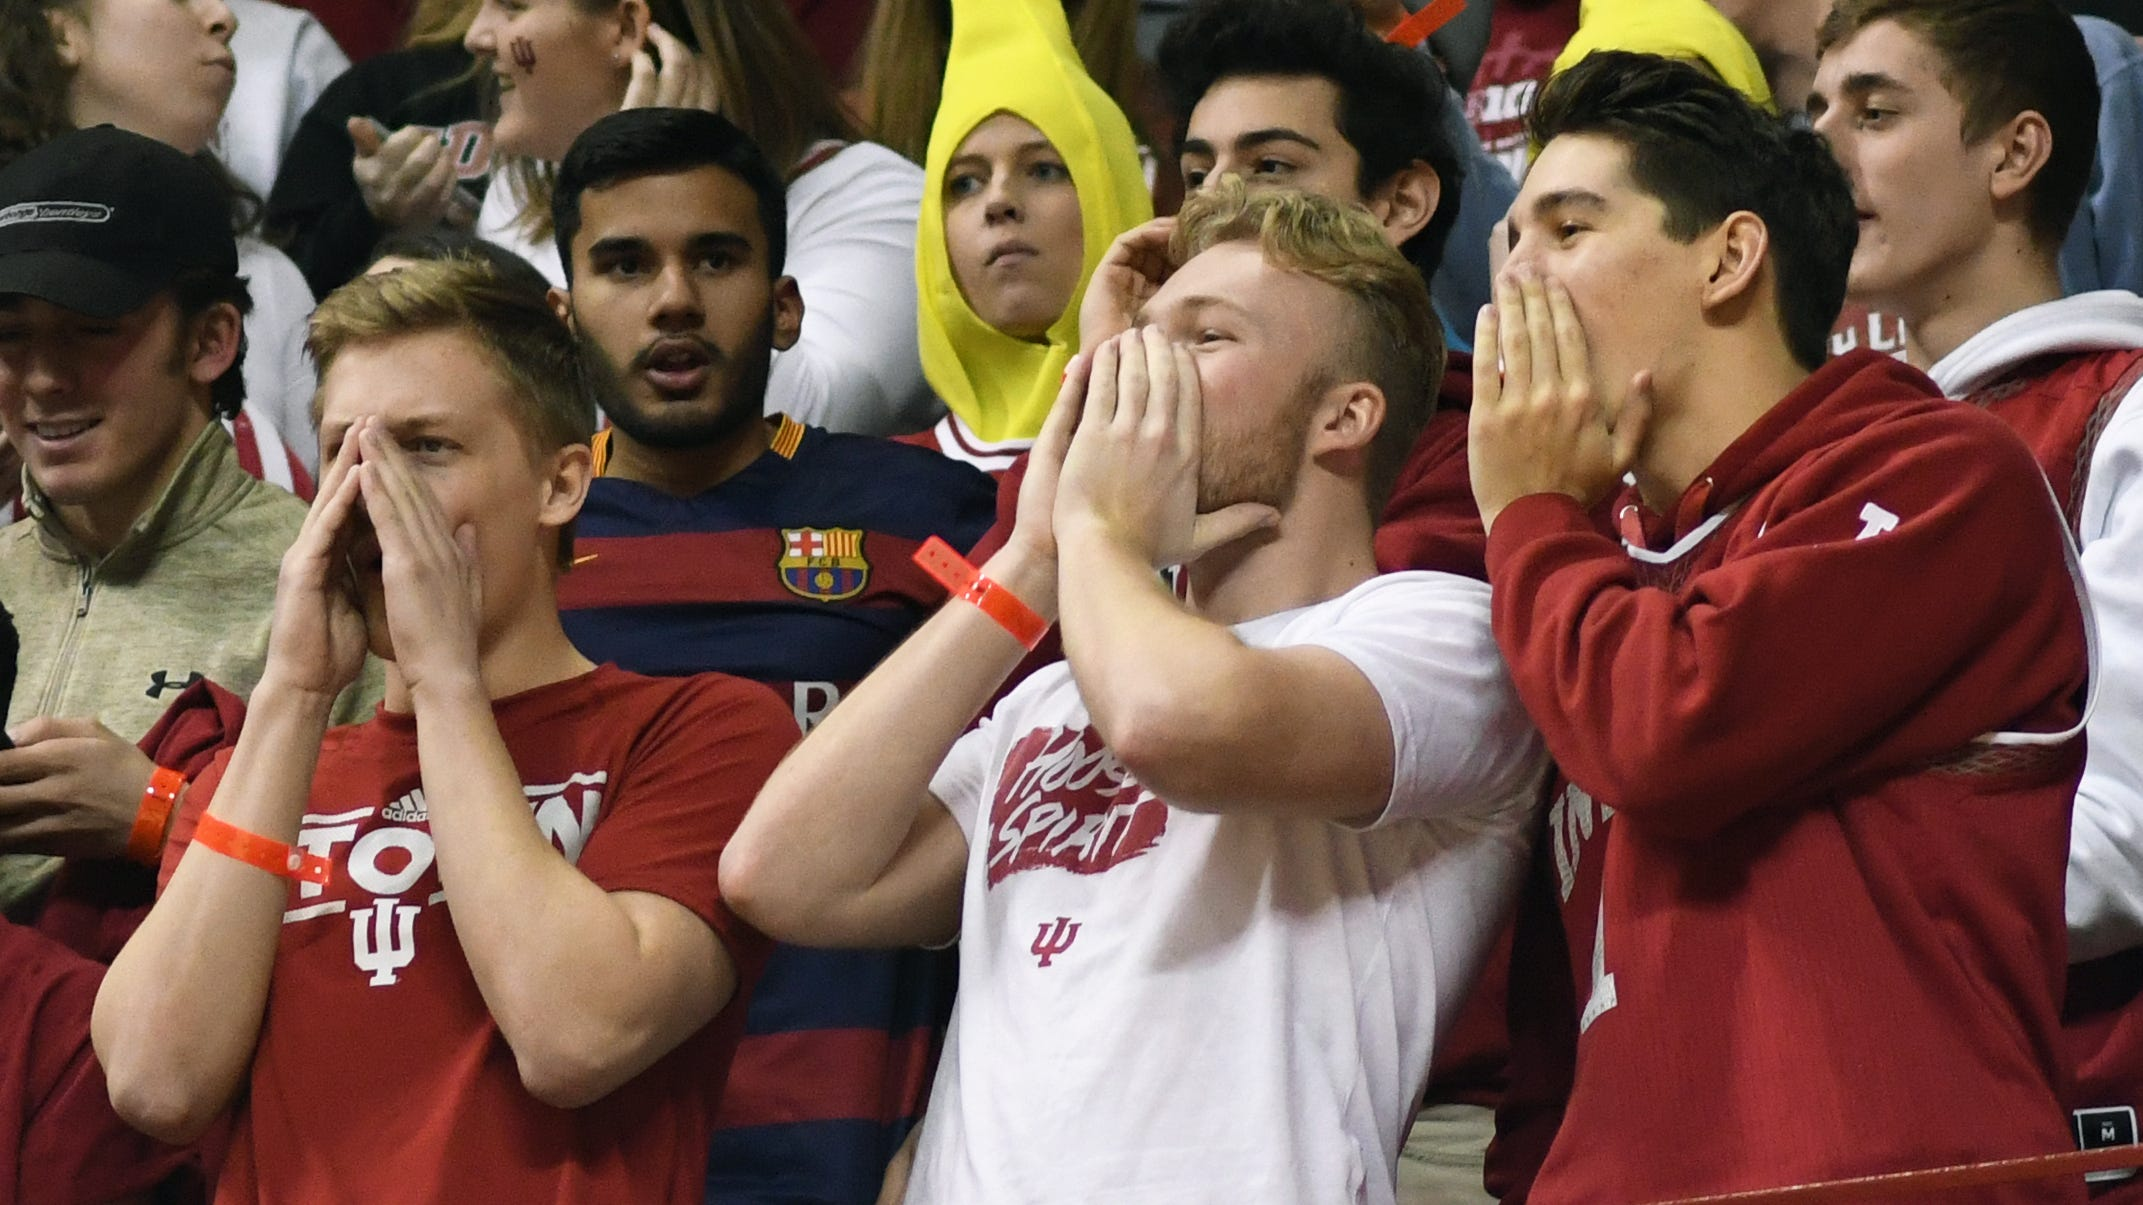 Indiana athletic director on profane chants: 'They were embarrassing and unacceptable'